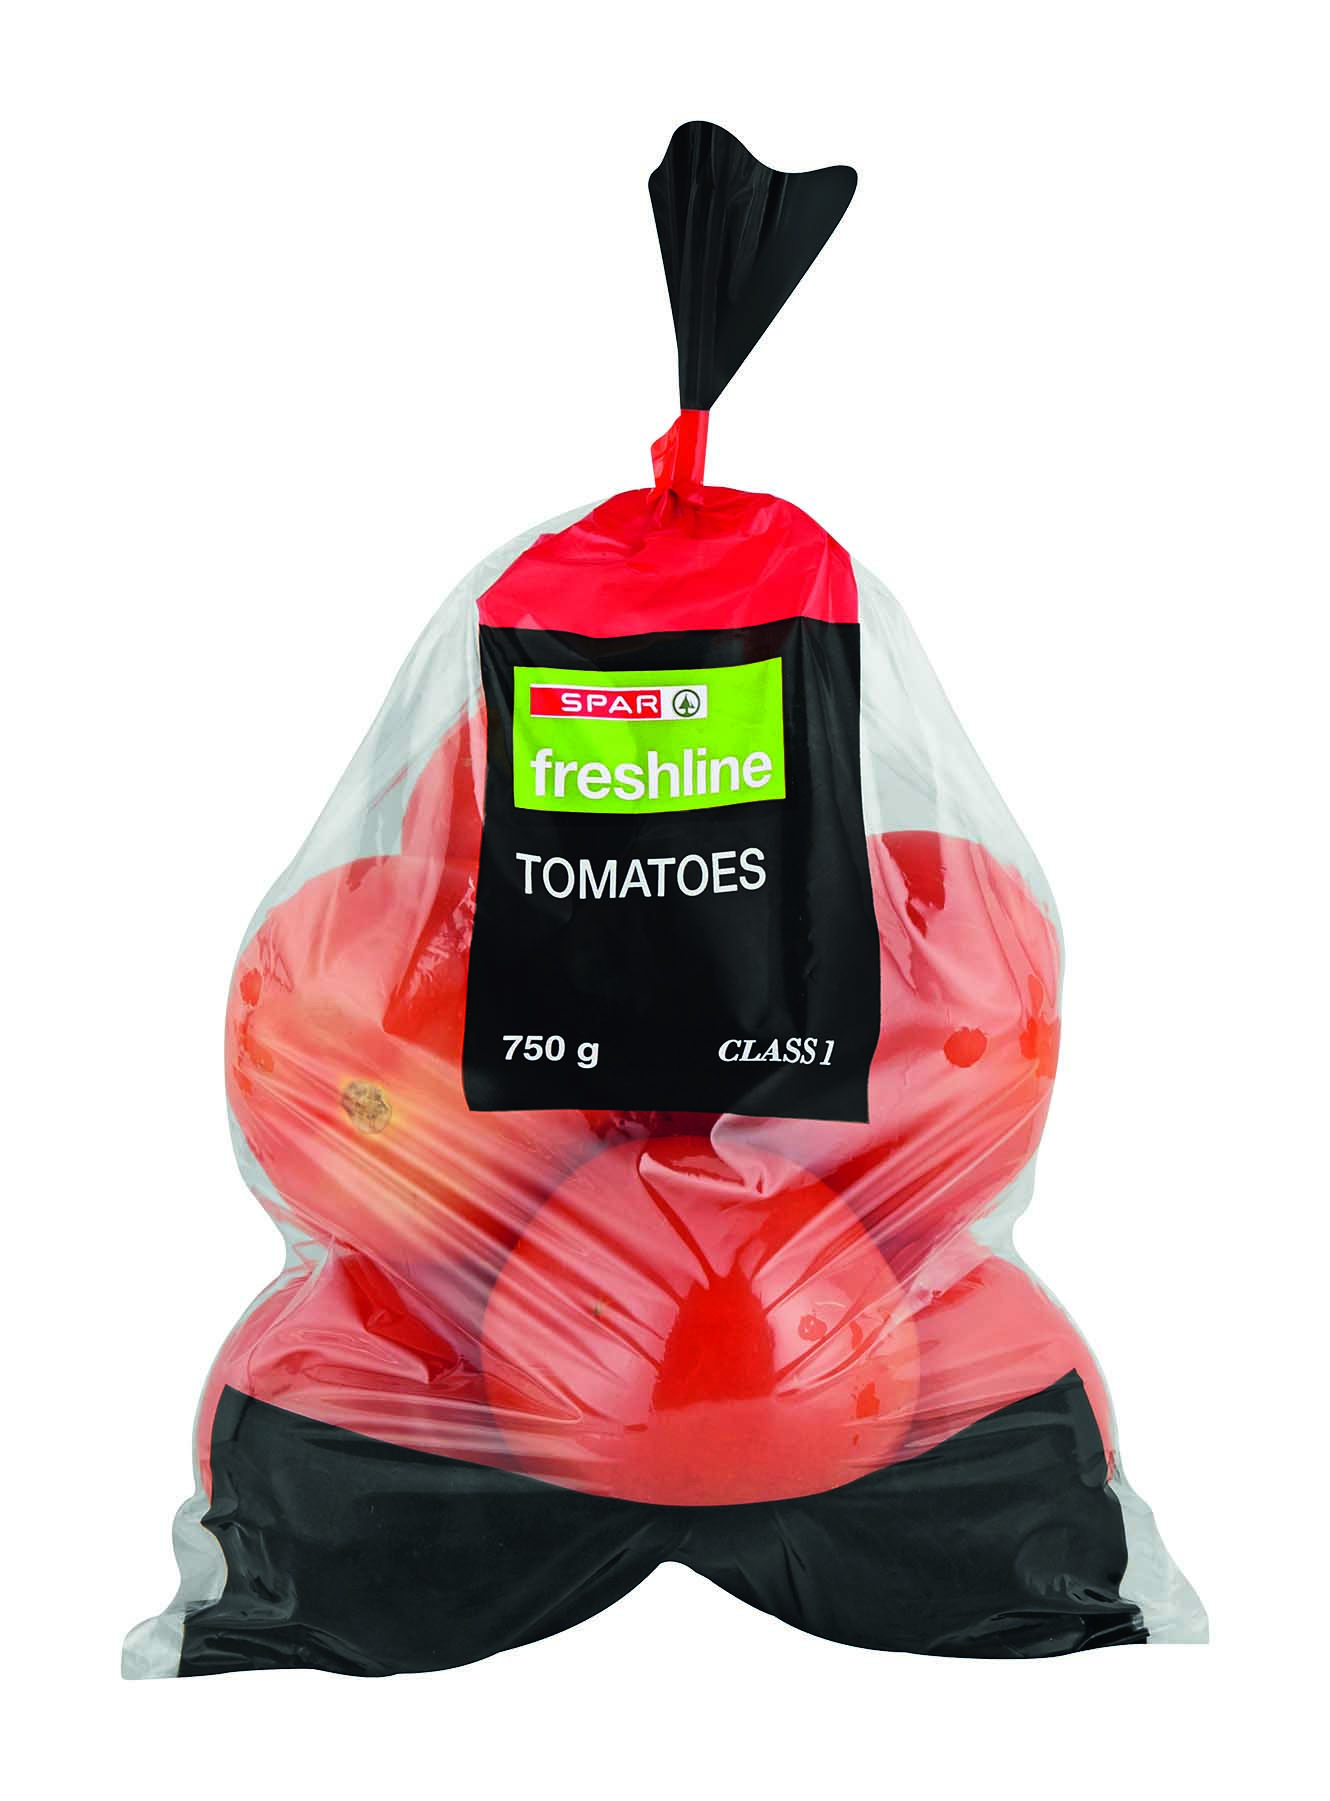 freshline long life tomatoes 750g